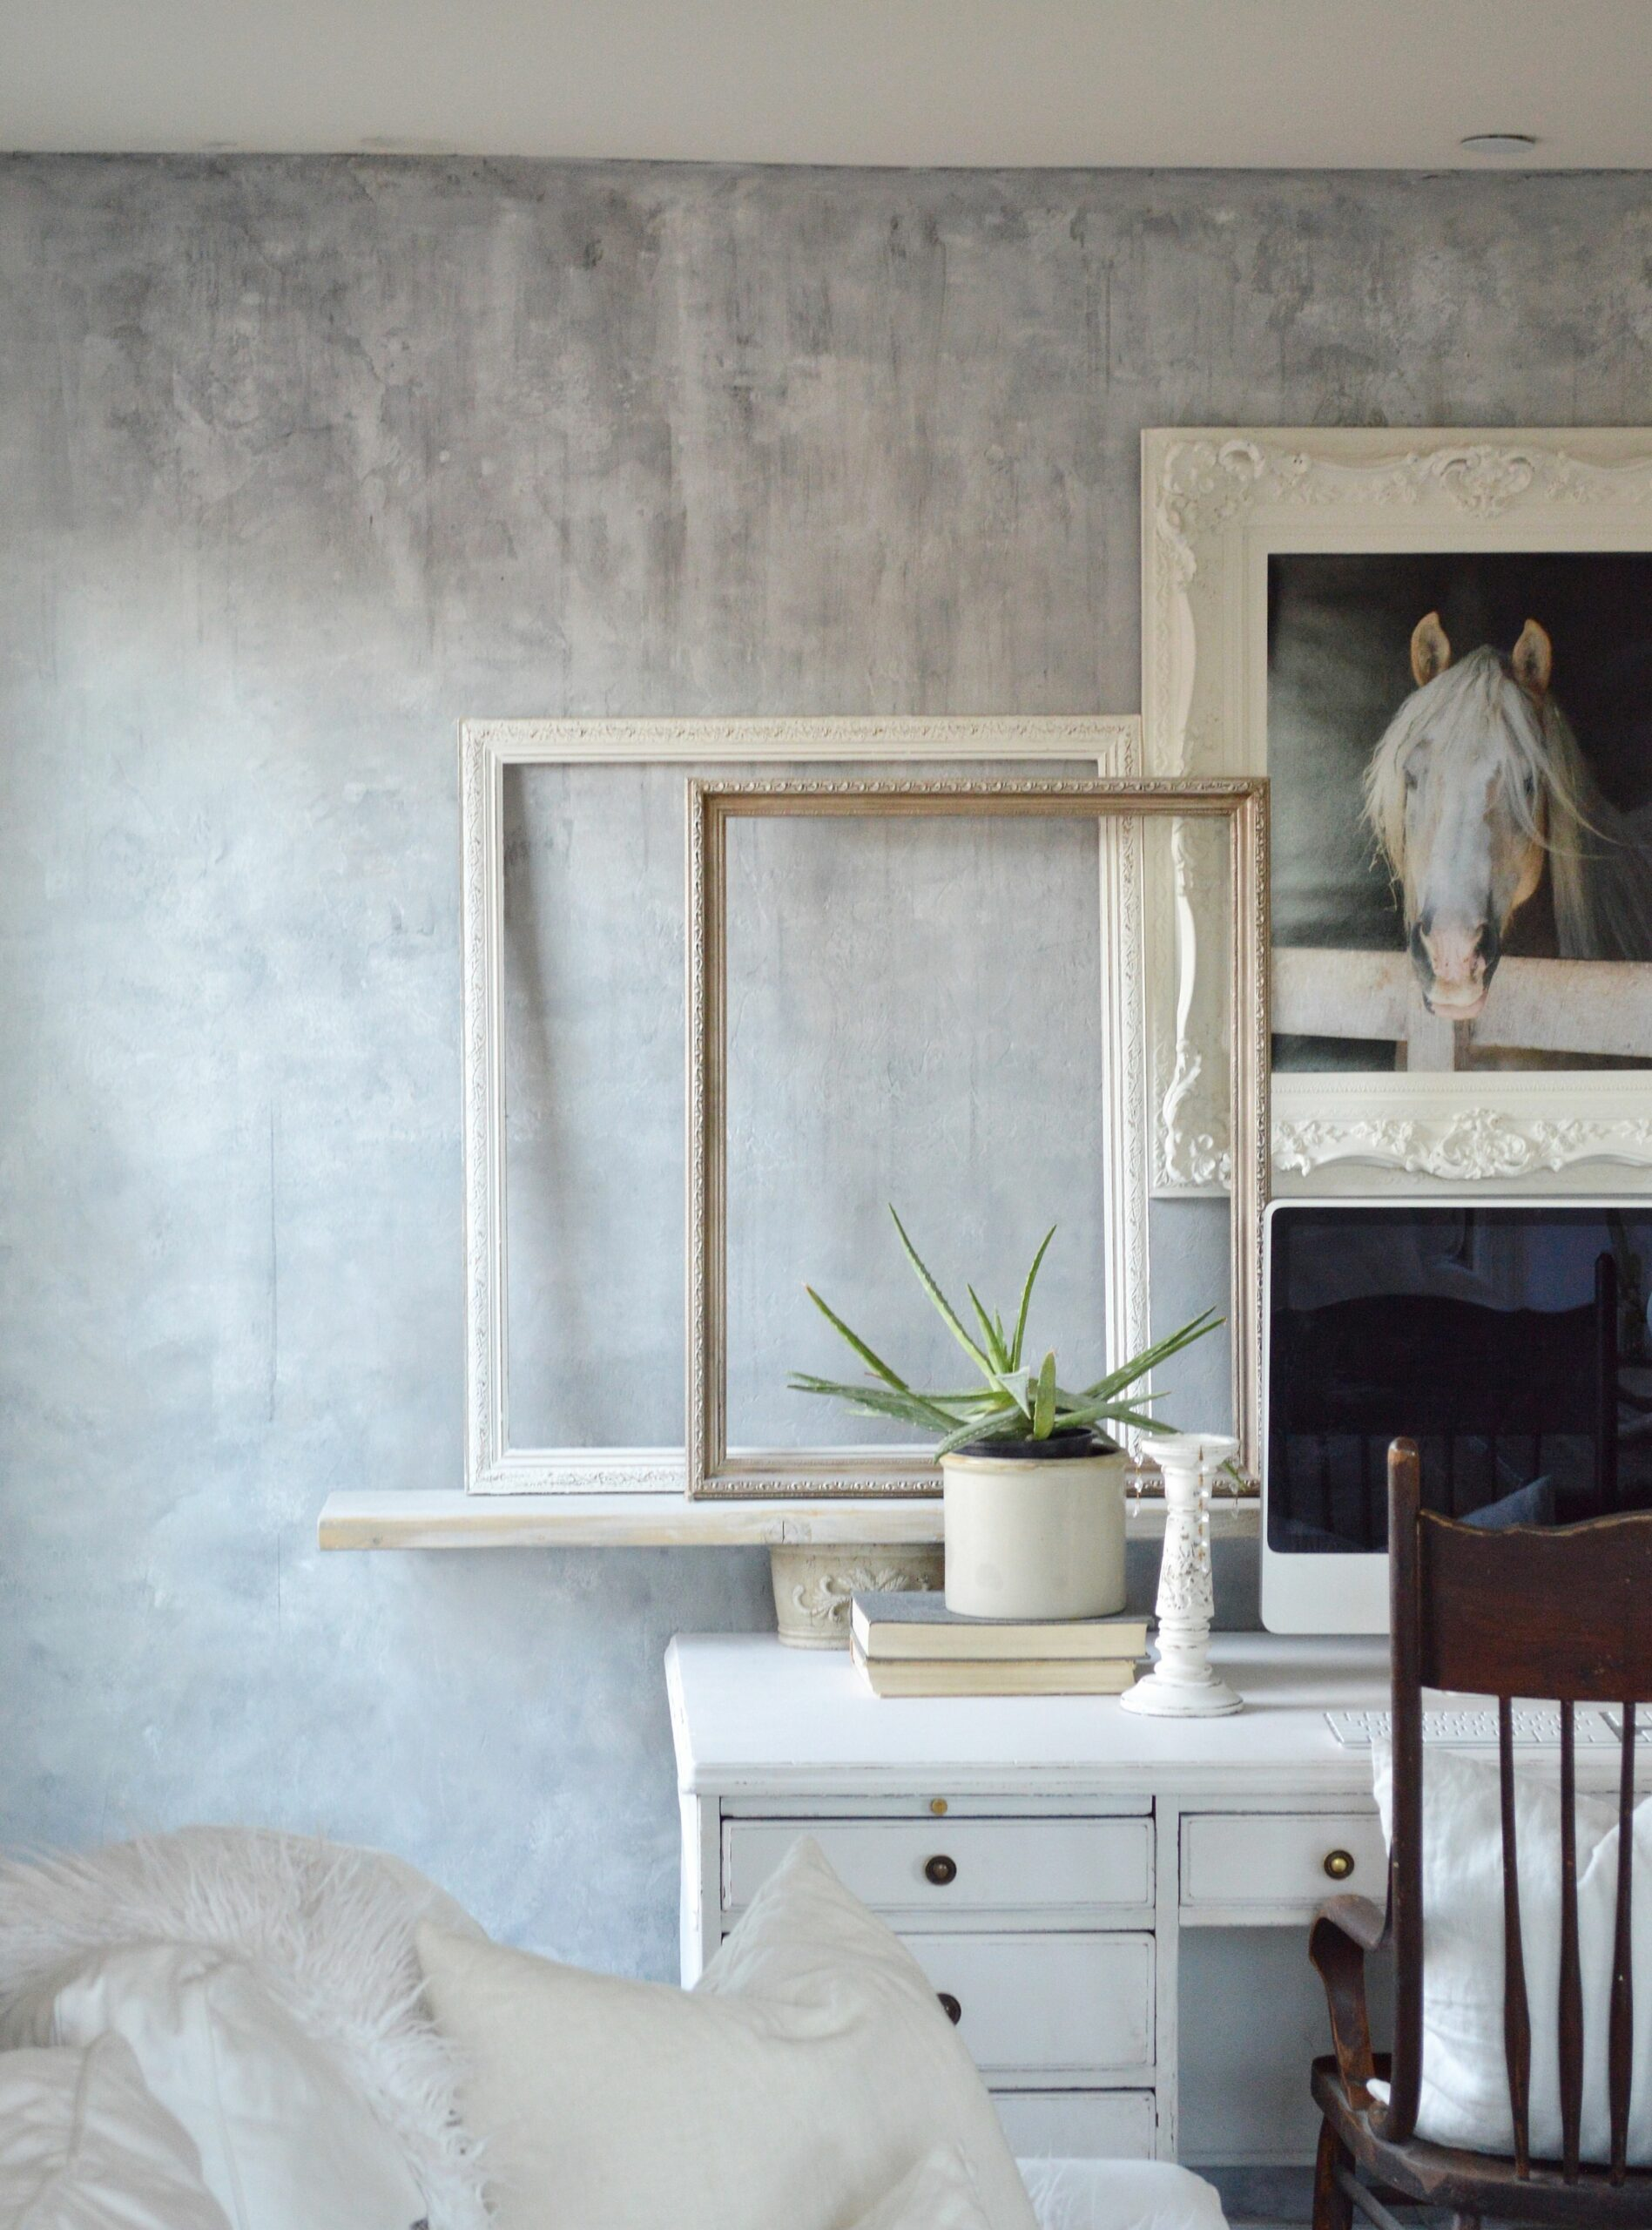 Painting A Wall To Look Like Concrete - diy home decor how to paint a faux concrete wall finish